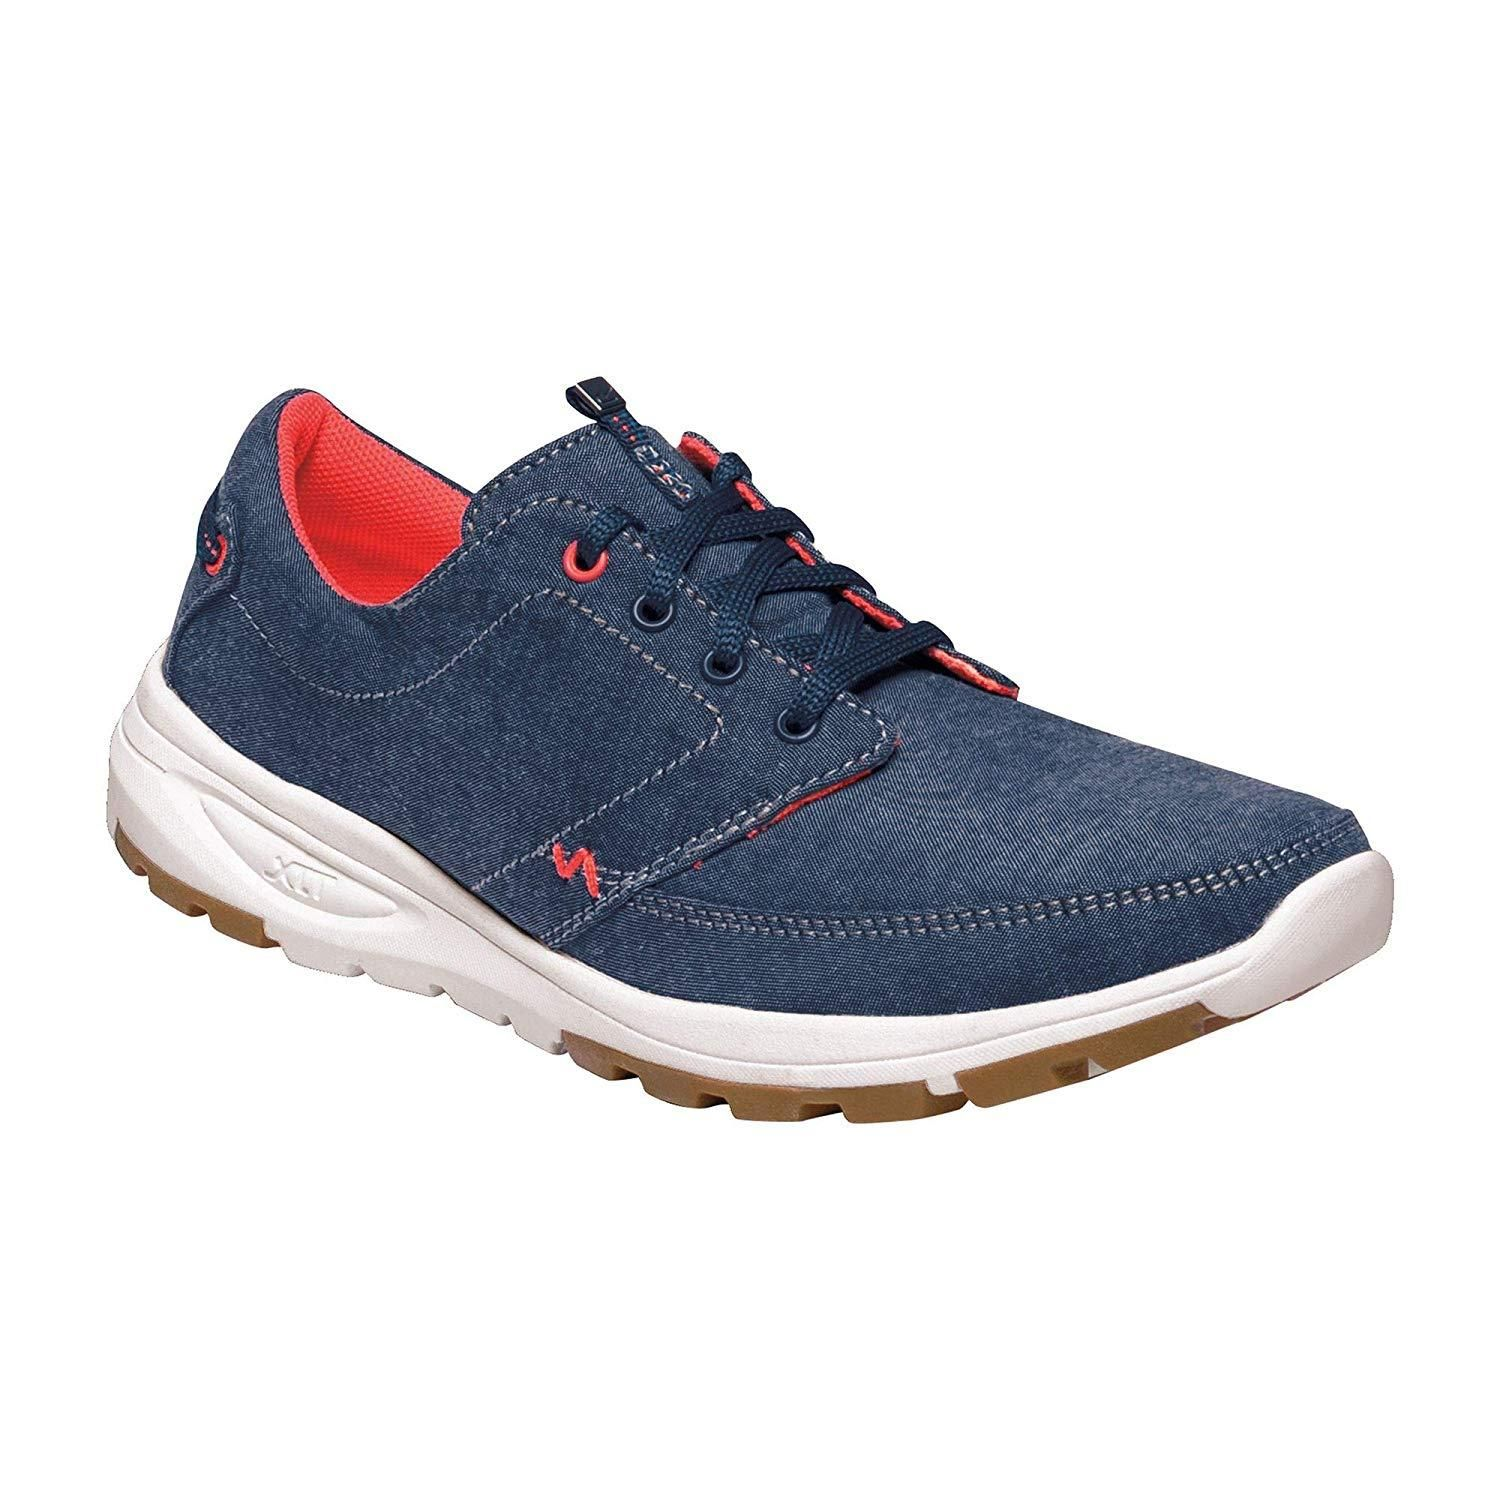 Regatta Womens/Ladies Marine II Casual Trainers